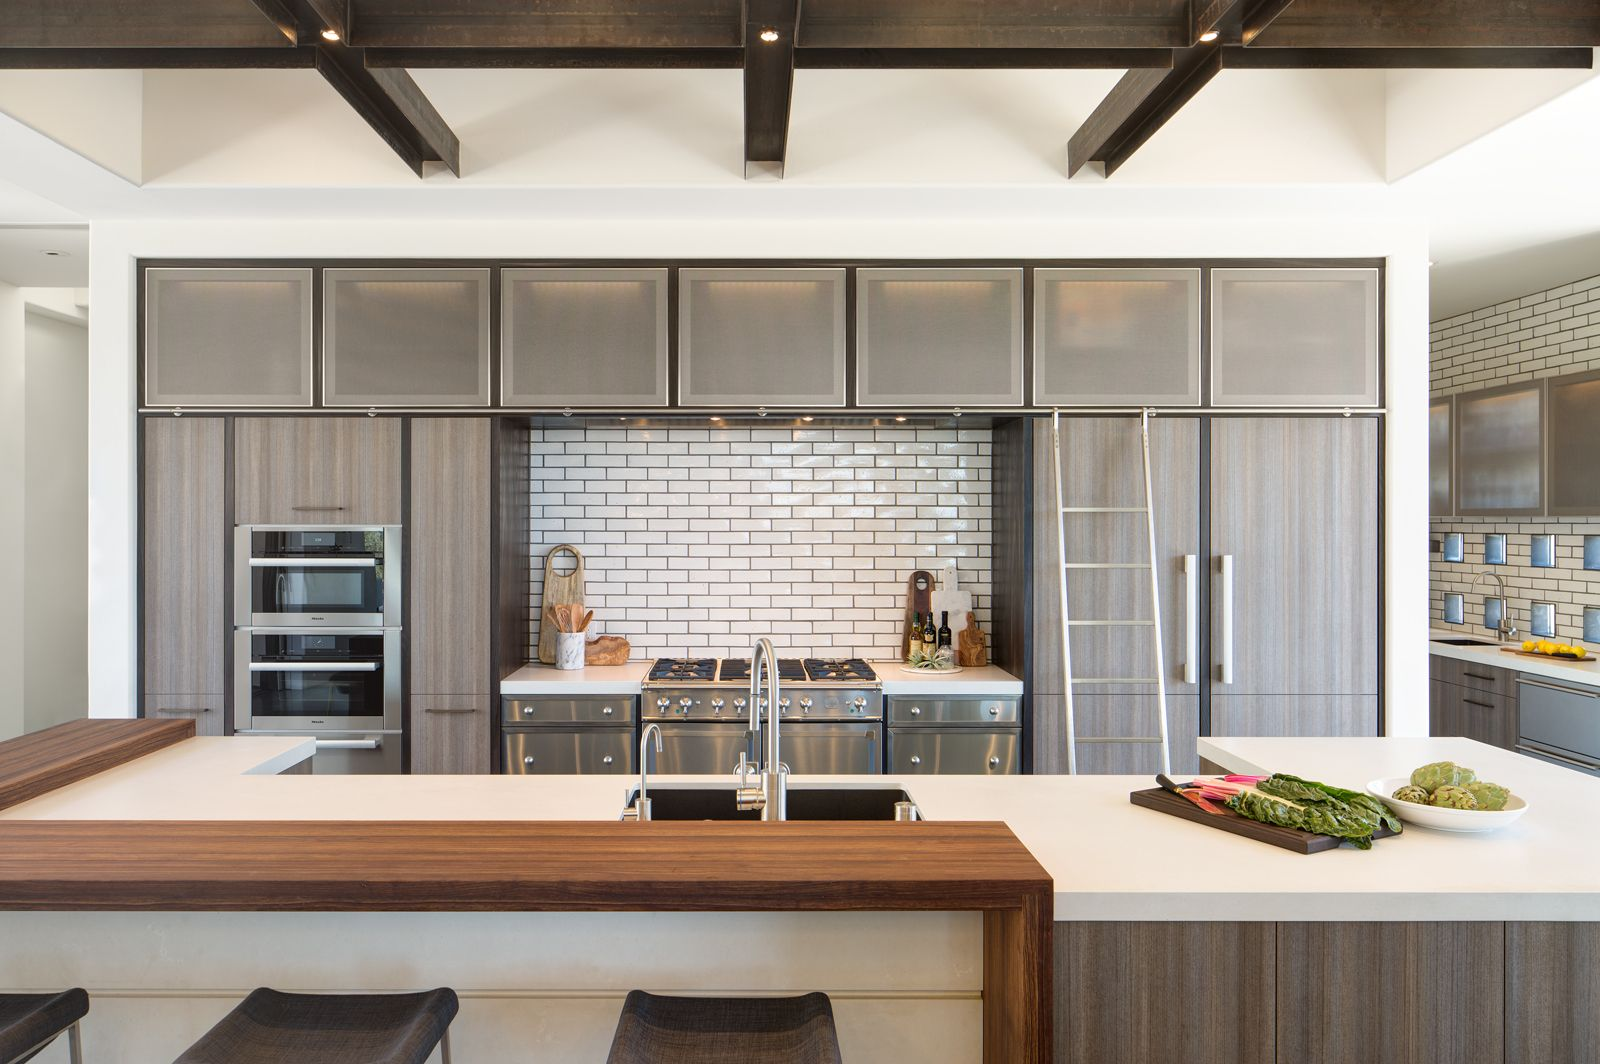 White Subway Tile In This Modern Santa Fe Kitchen By Built Design Collective Tile By Statements In Tile Brass Ac Light Kitchen Floor Kitchen Flooring Kitchen